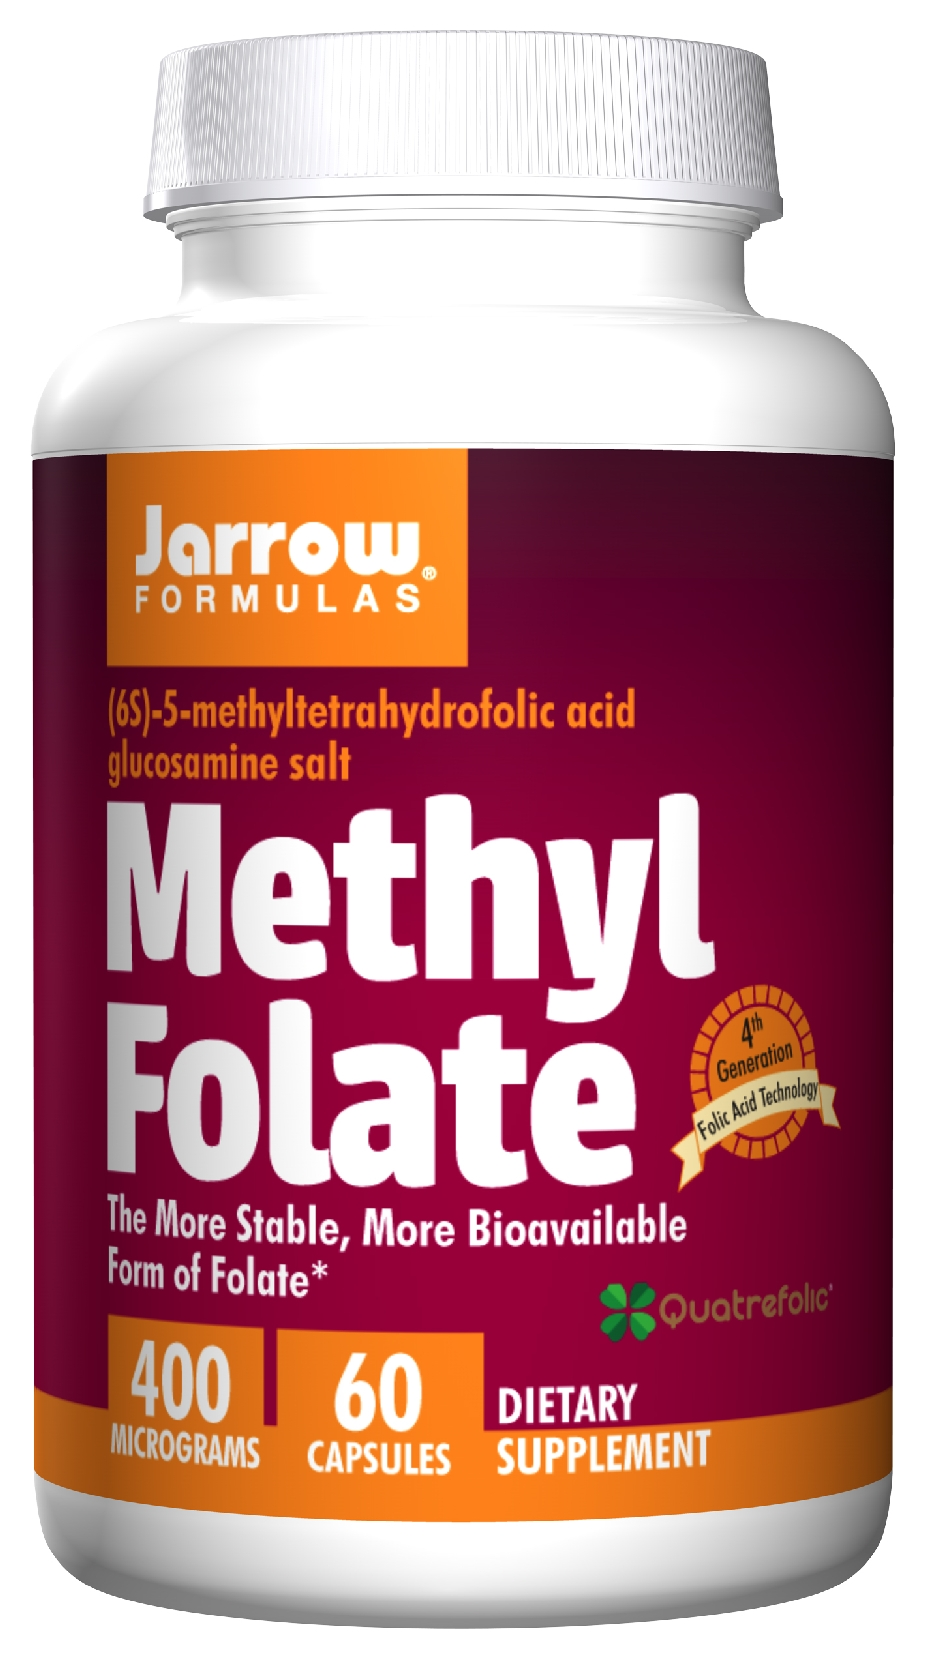 Methyl Folate 60 caps by Jarrow Formulas